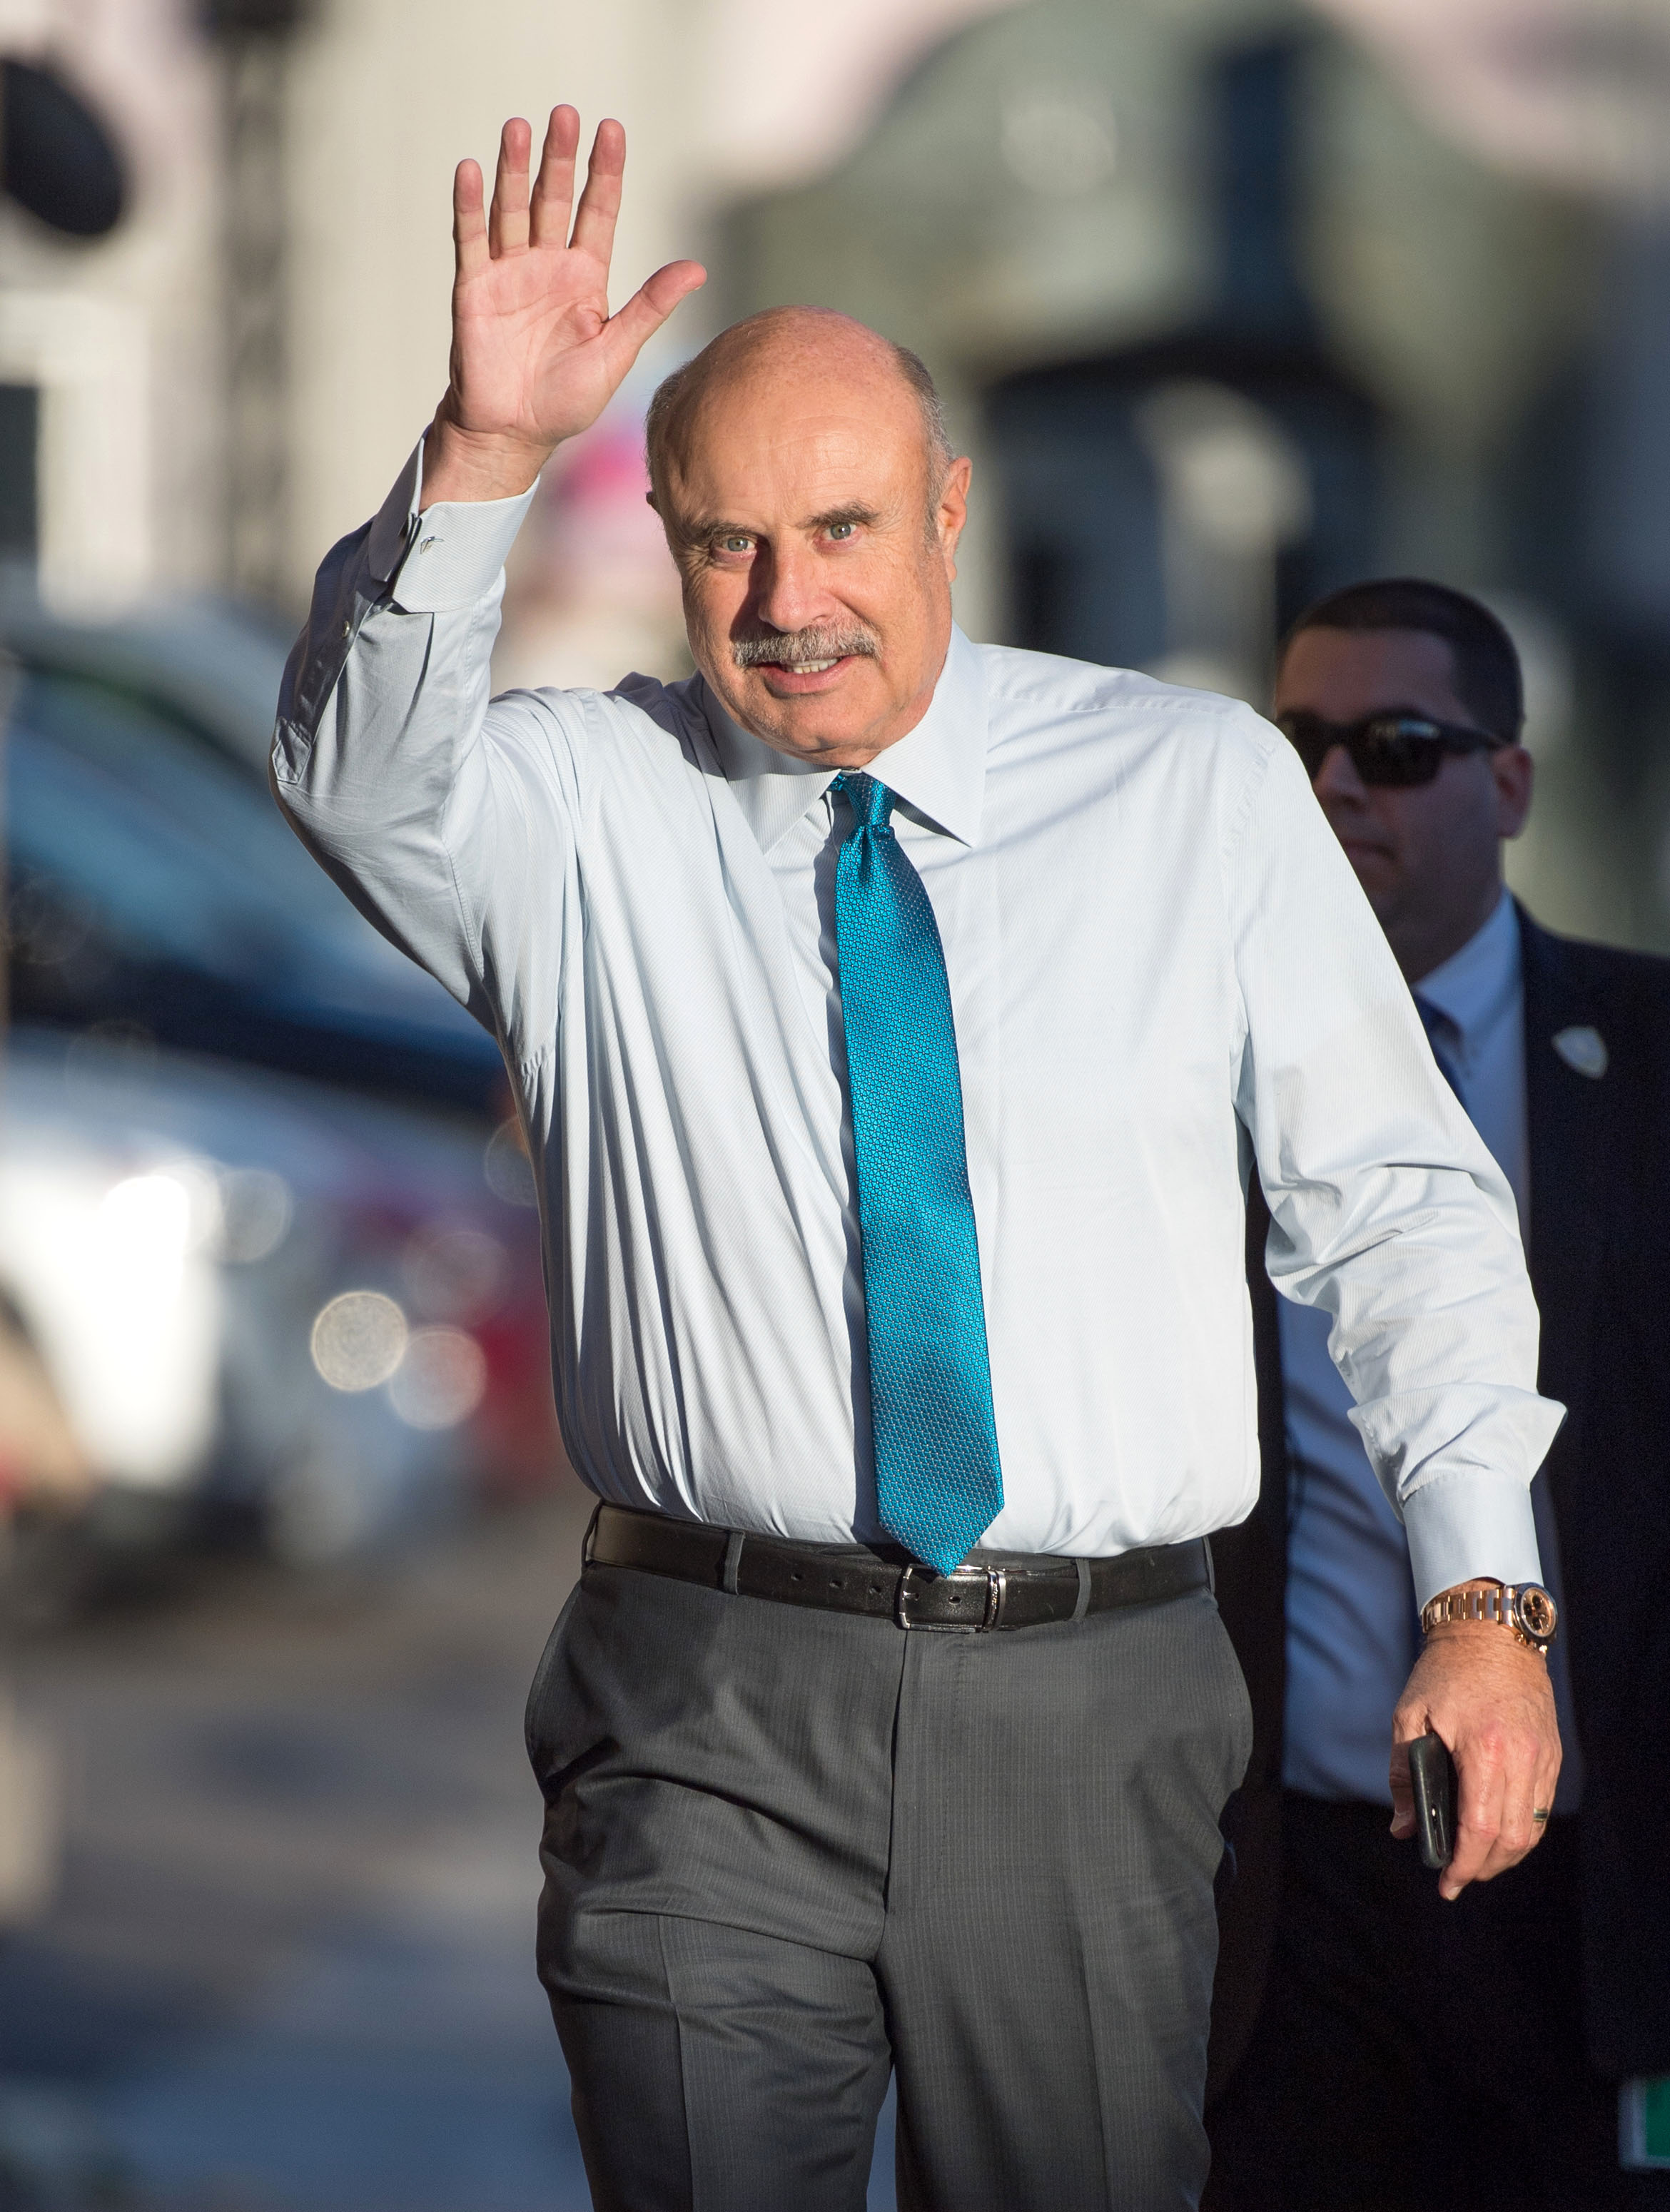 Dr. Phil McGraw Celebrates His 3000th Episode of 'Dr. Phil' — Watch the Amazing Milestone!